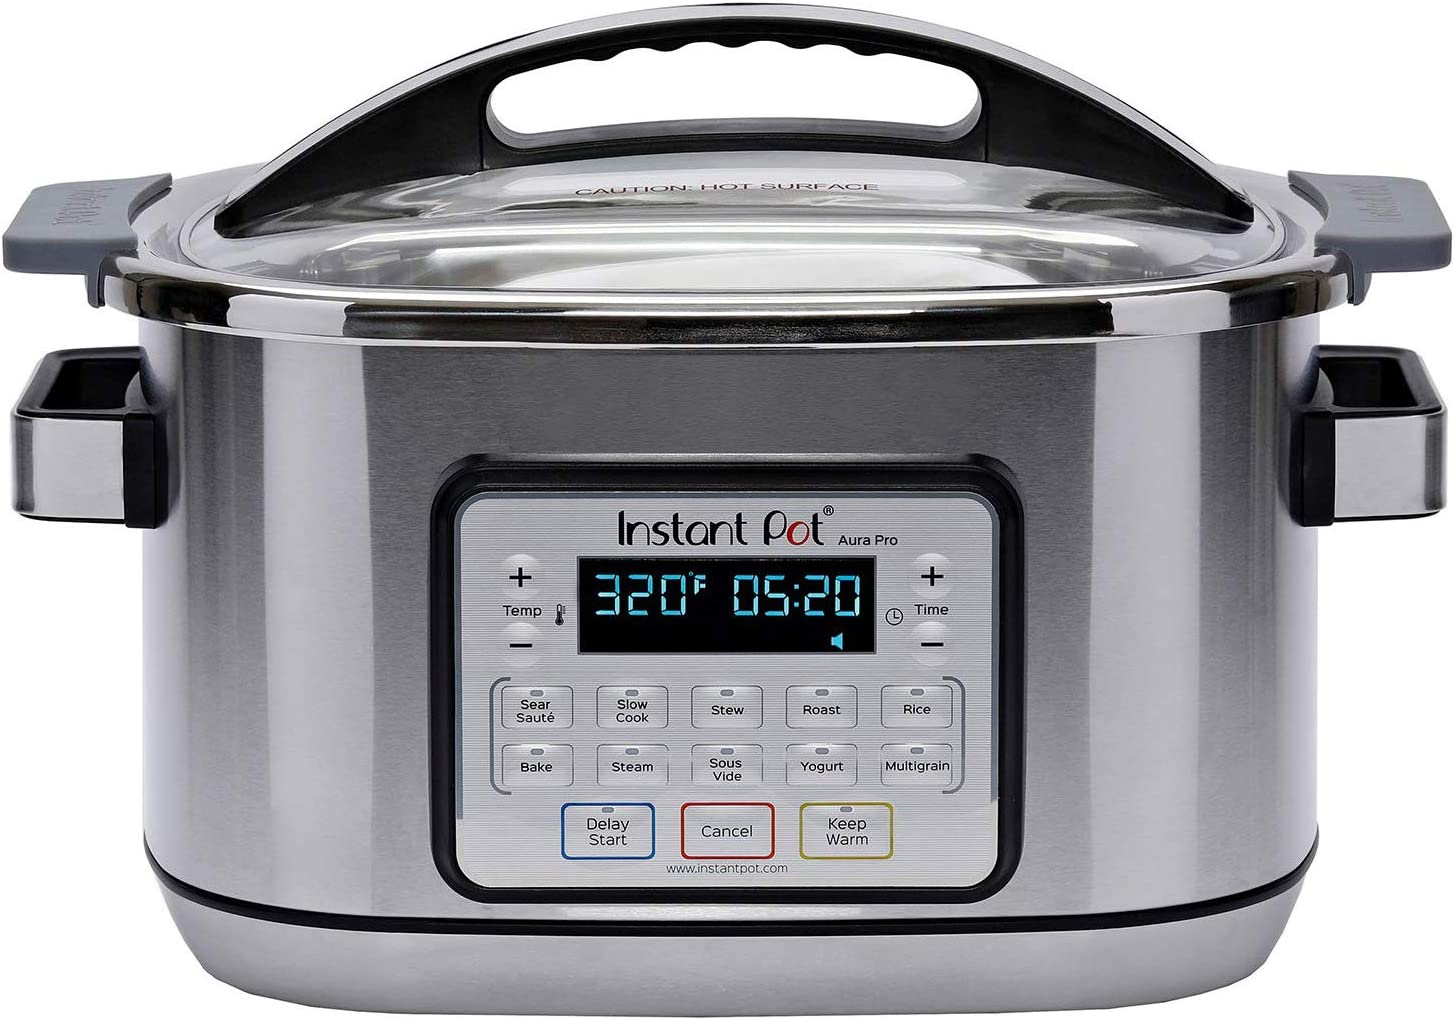 Instant Pot Aura Pro Multi-Use Programmable Slow Cooker with Sous Vide, 8 Quart